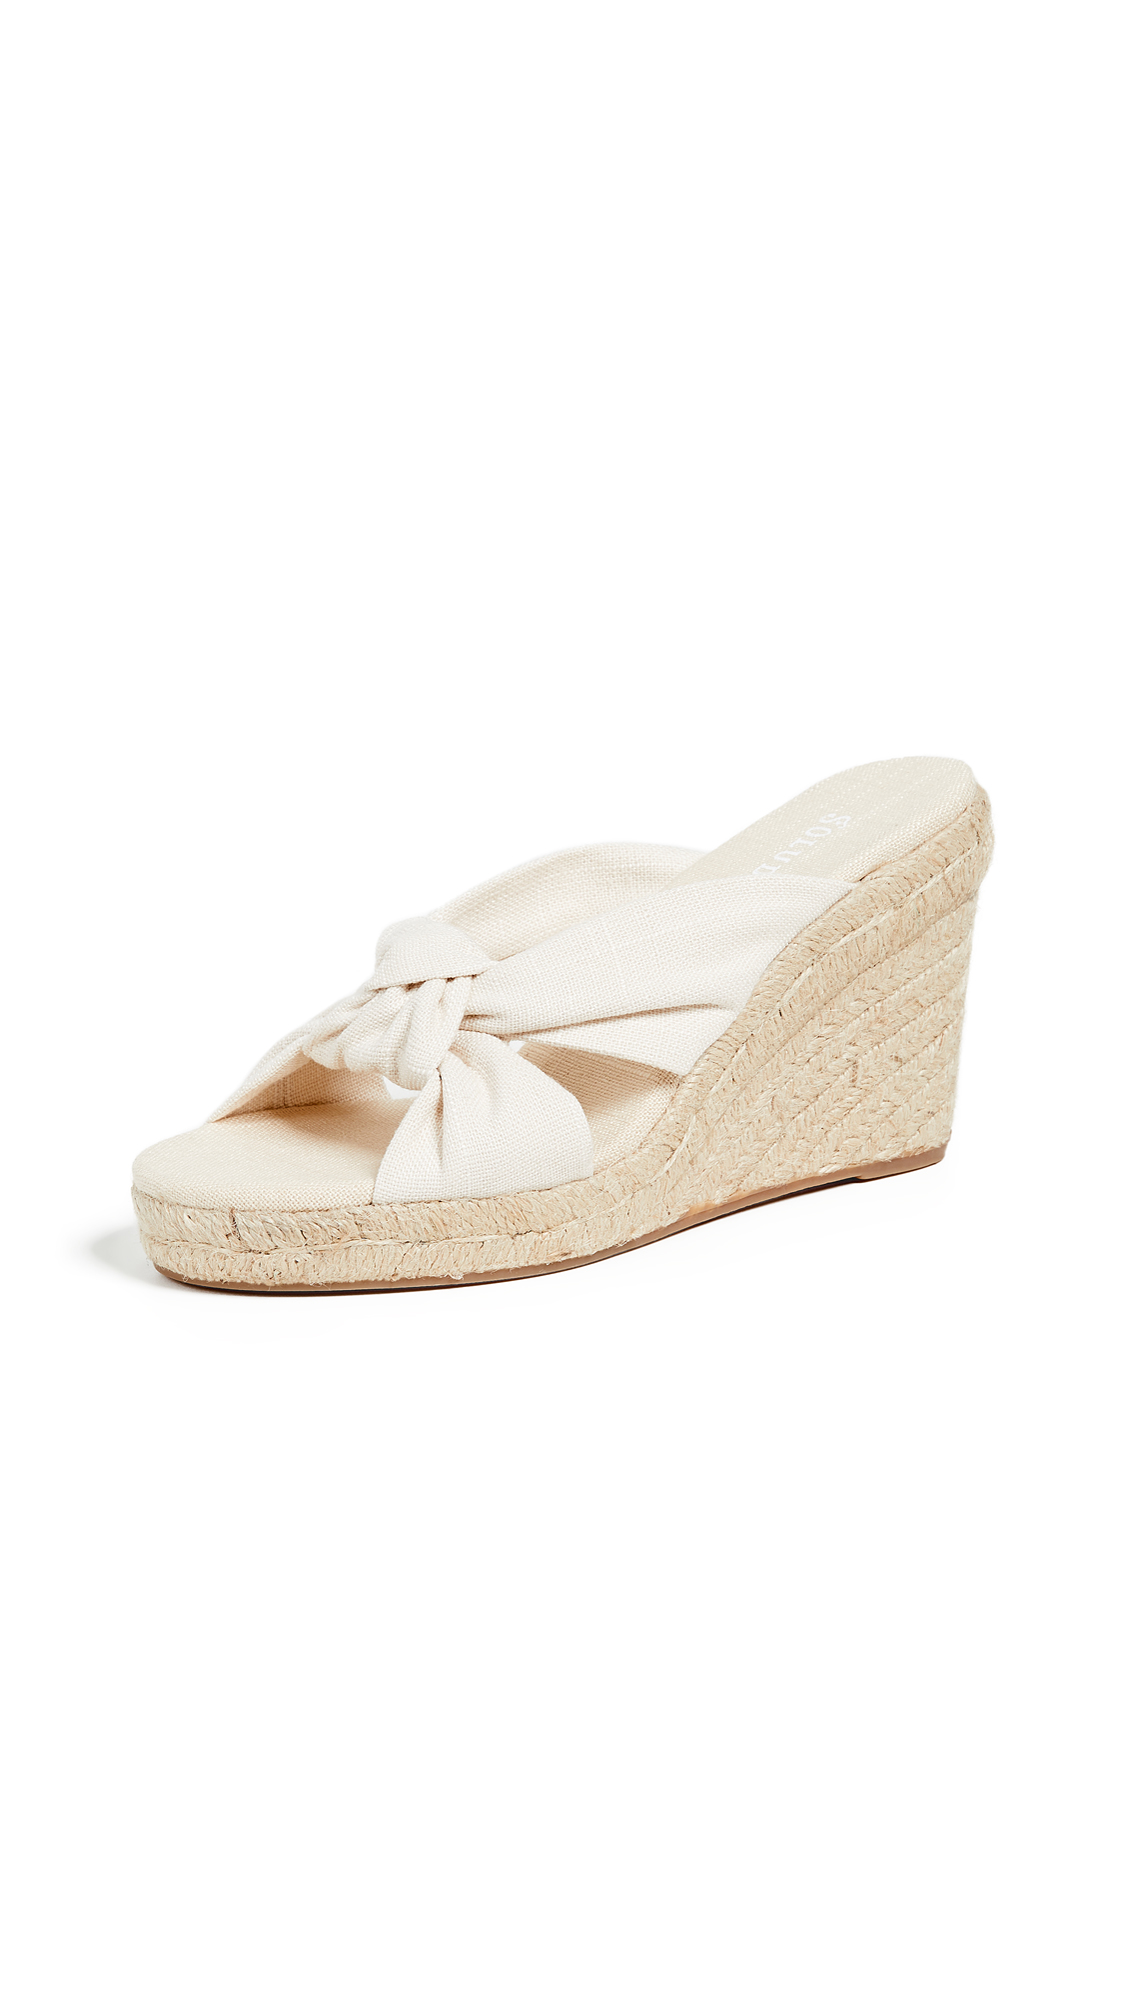 Soludos Knotted Wedge Espadrilles - Blush